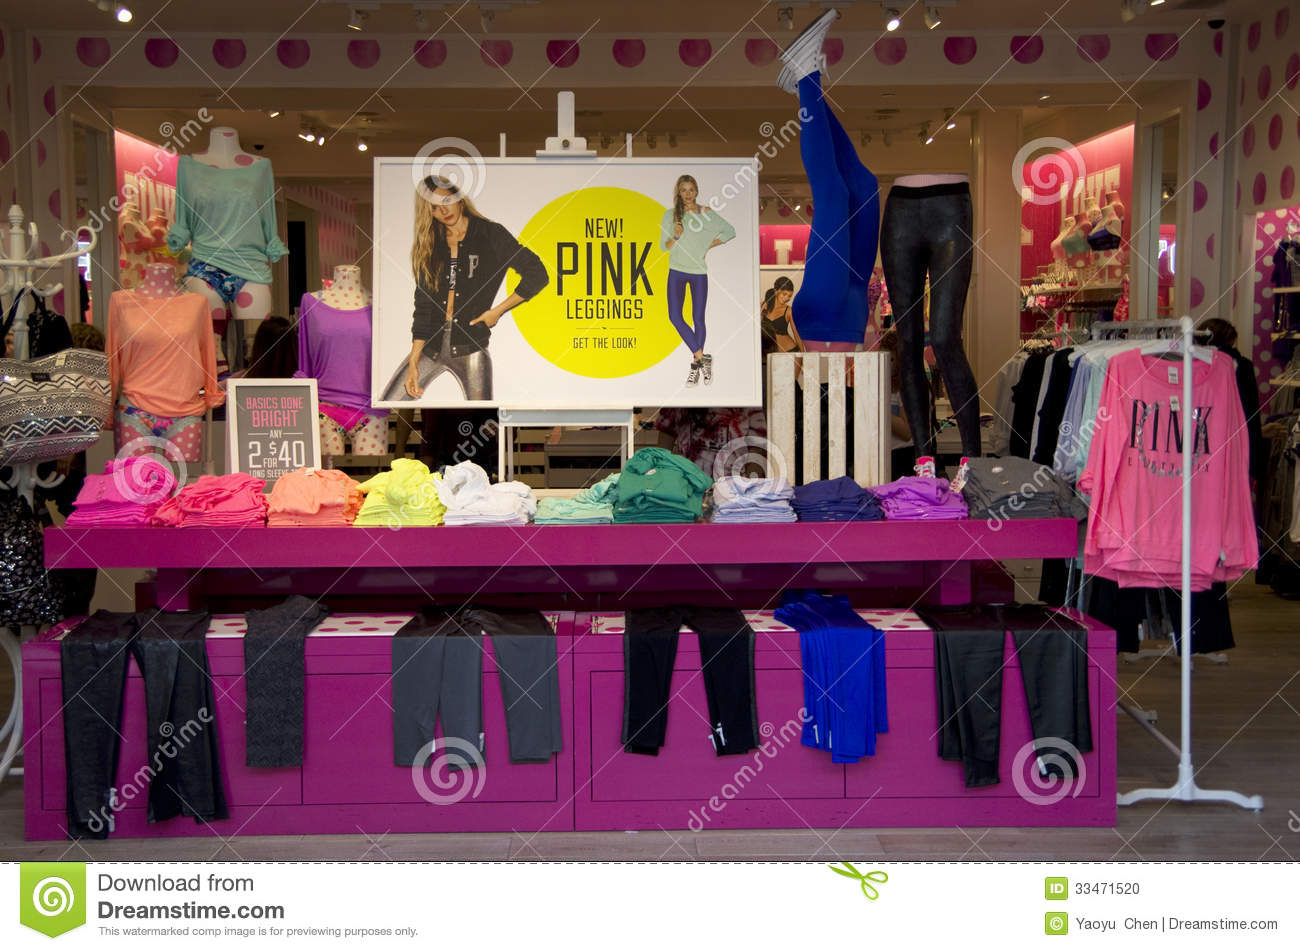 Pink fashion store by Victoria's Secret has bold designs. It is at